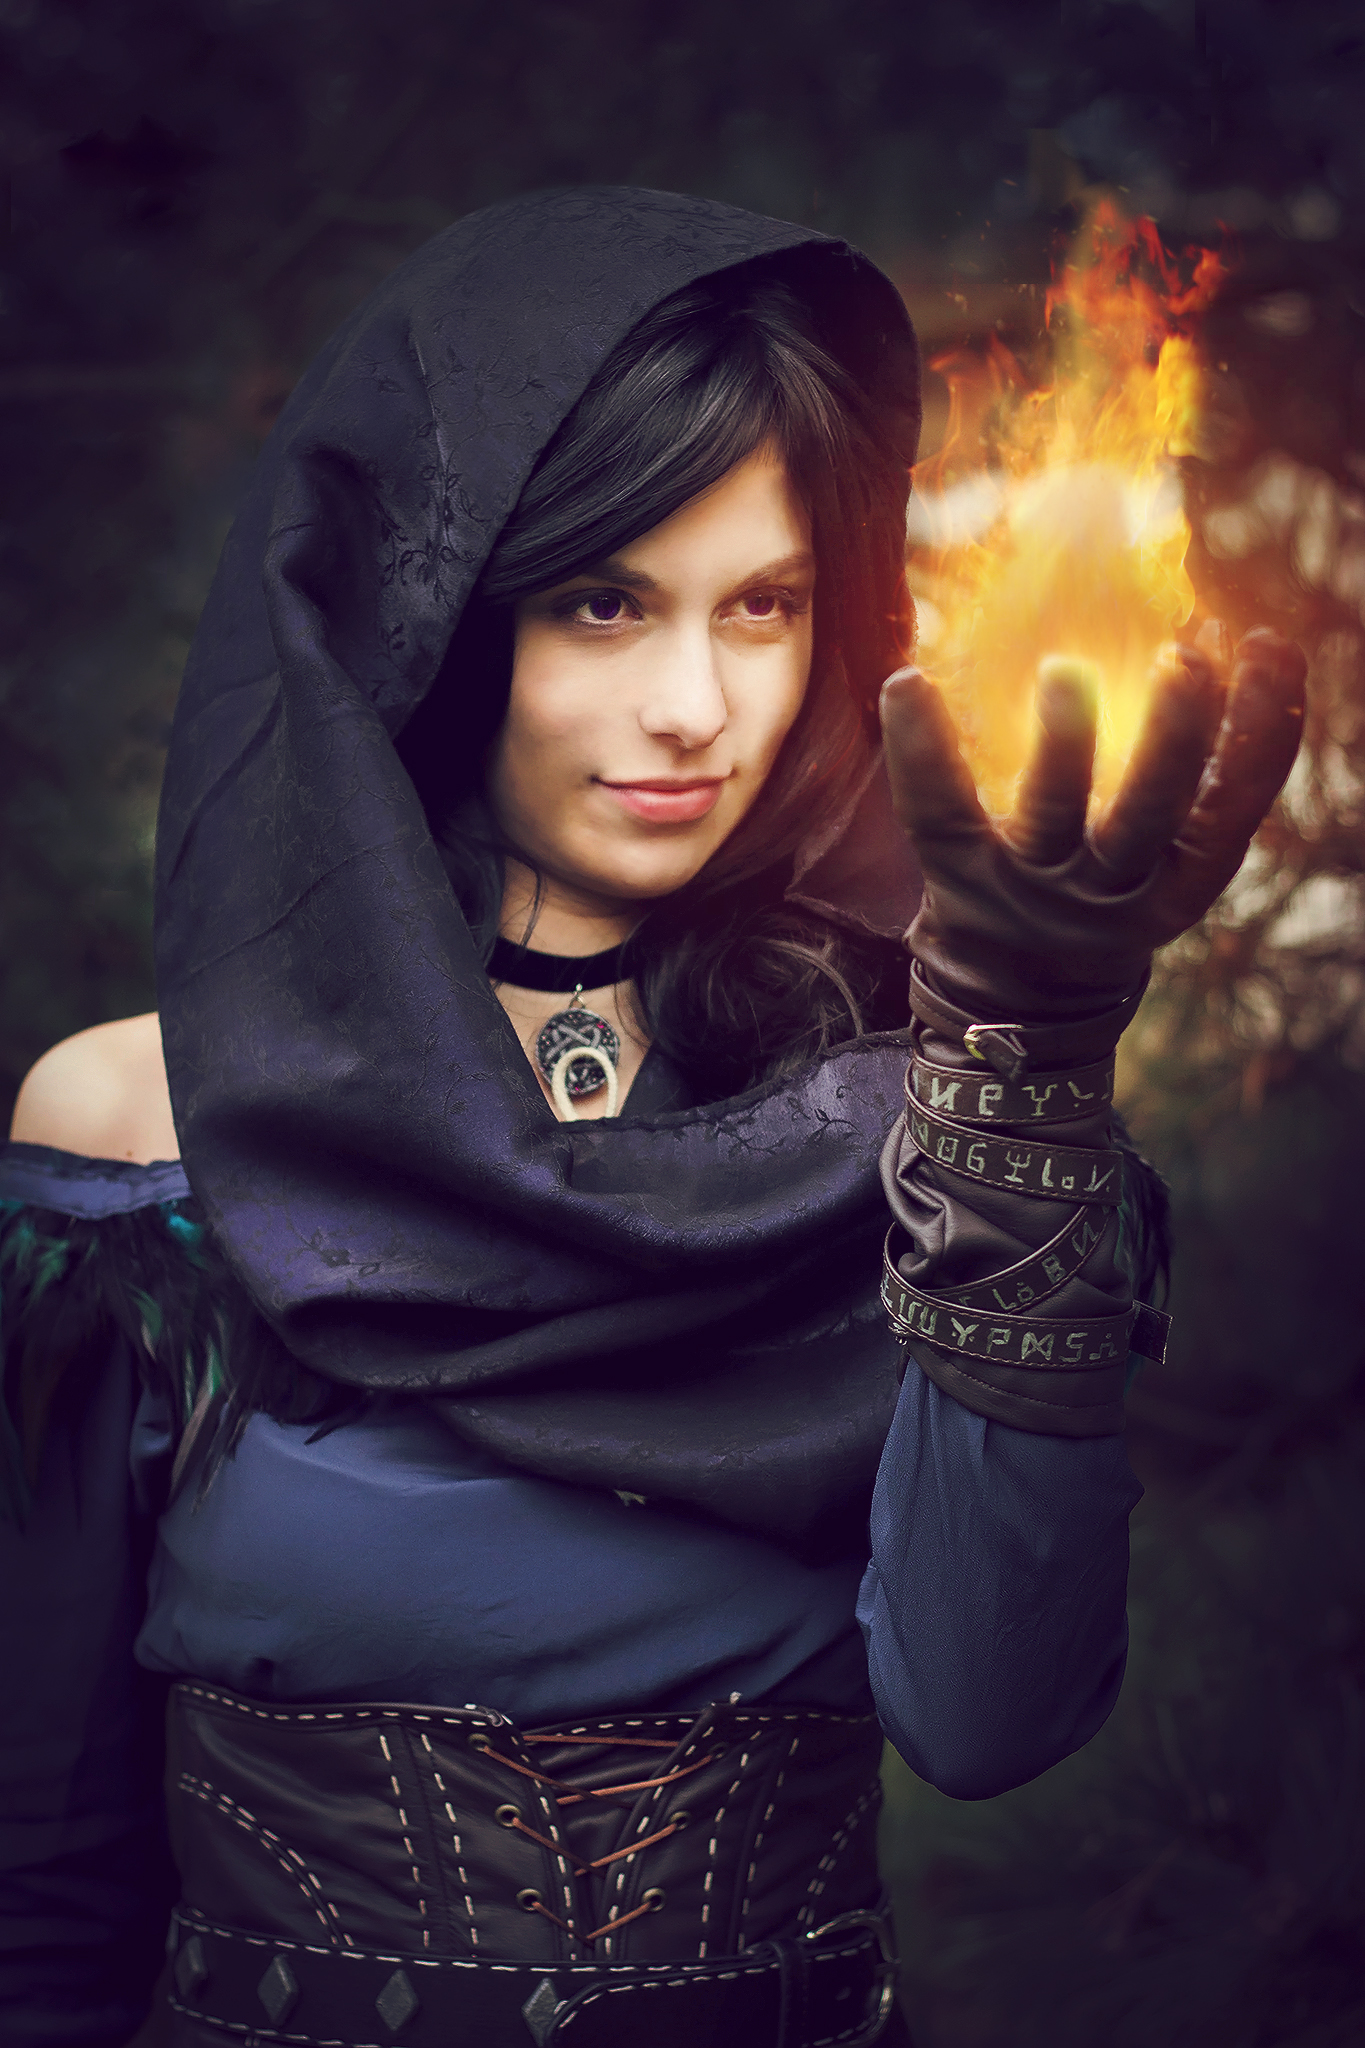 Yennefer DLC / Photo by Creative Wolves